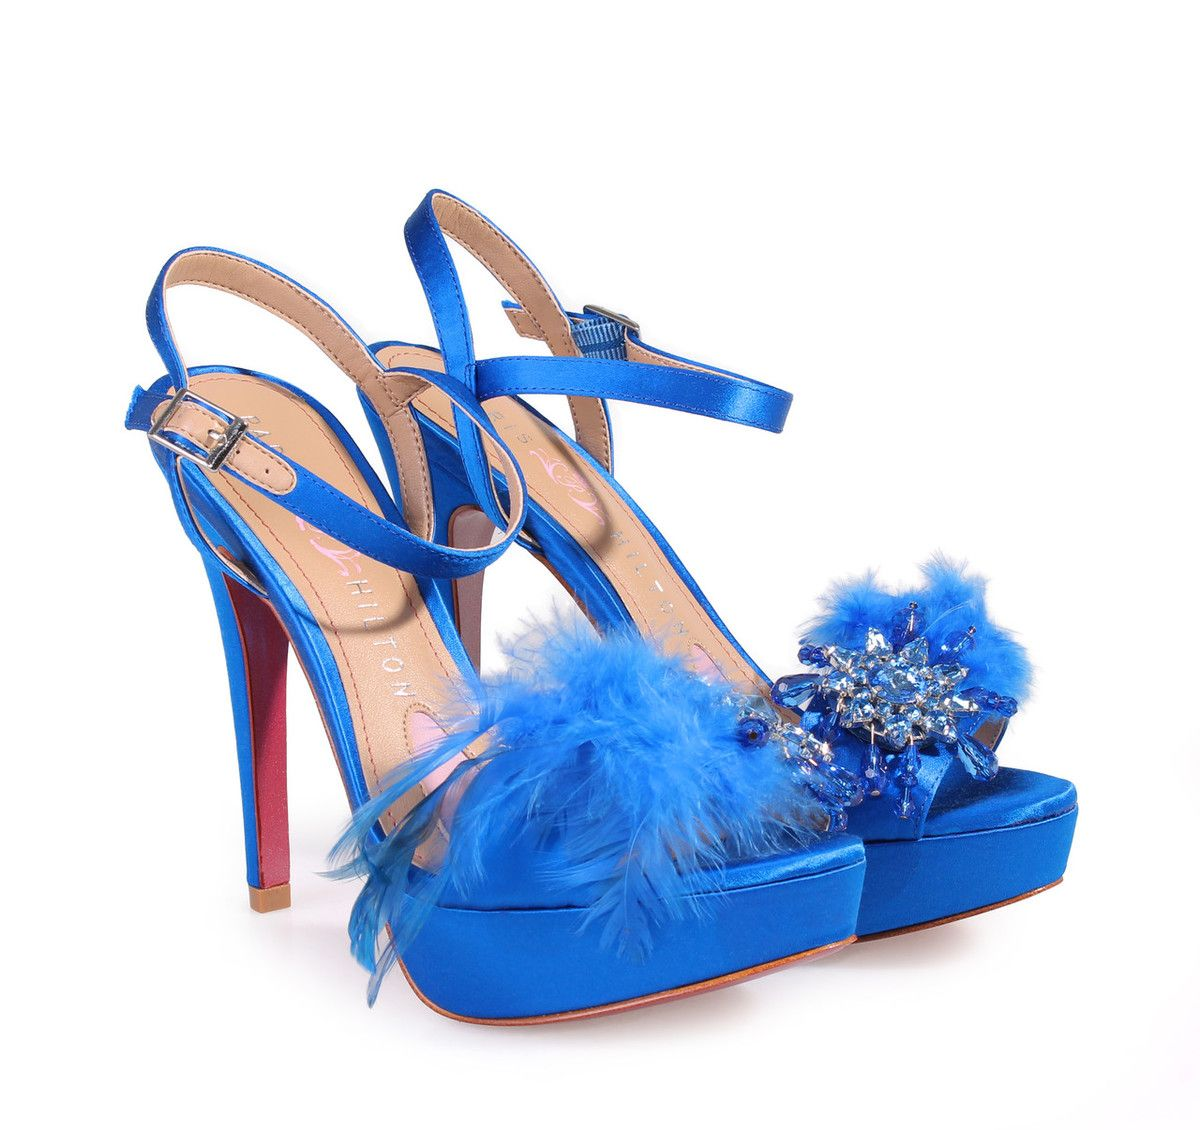 PARIS HILTON Royal blue Bridal Satin High heeled Sandals